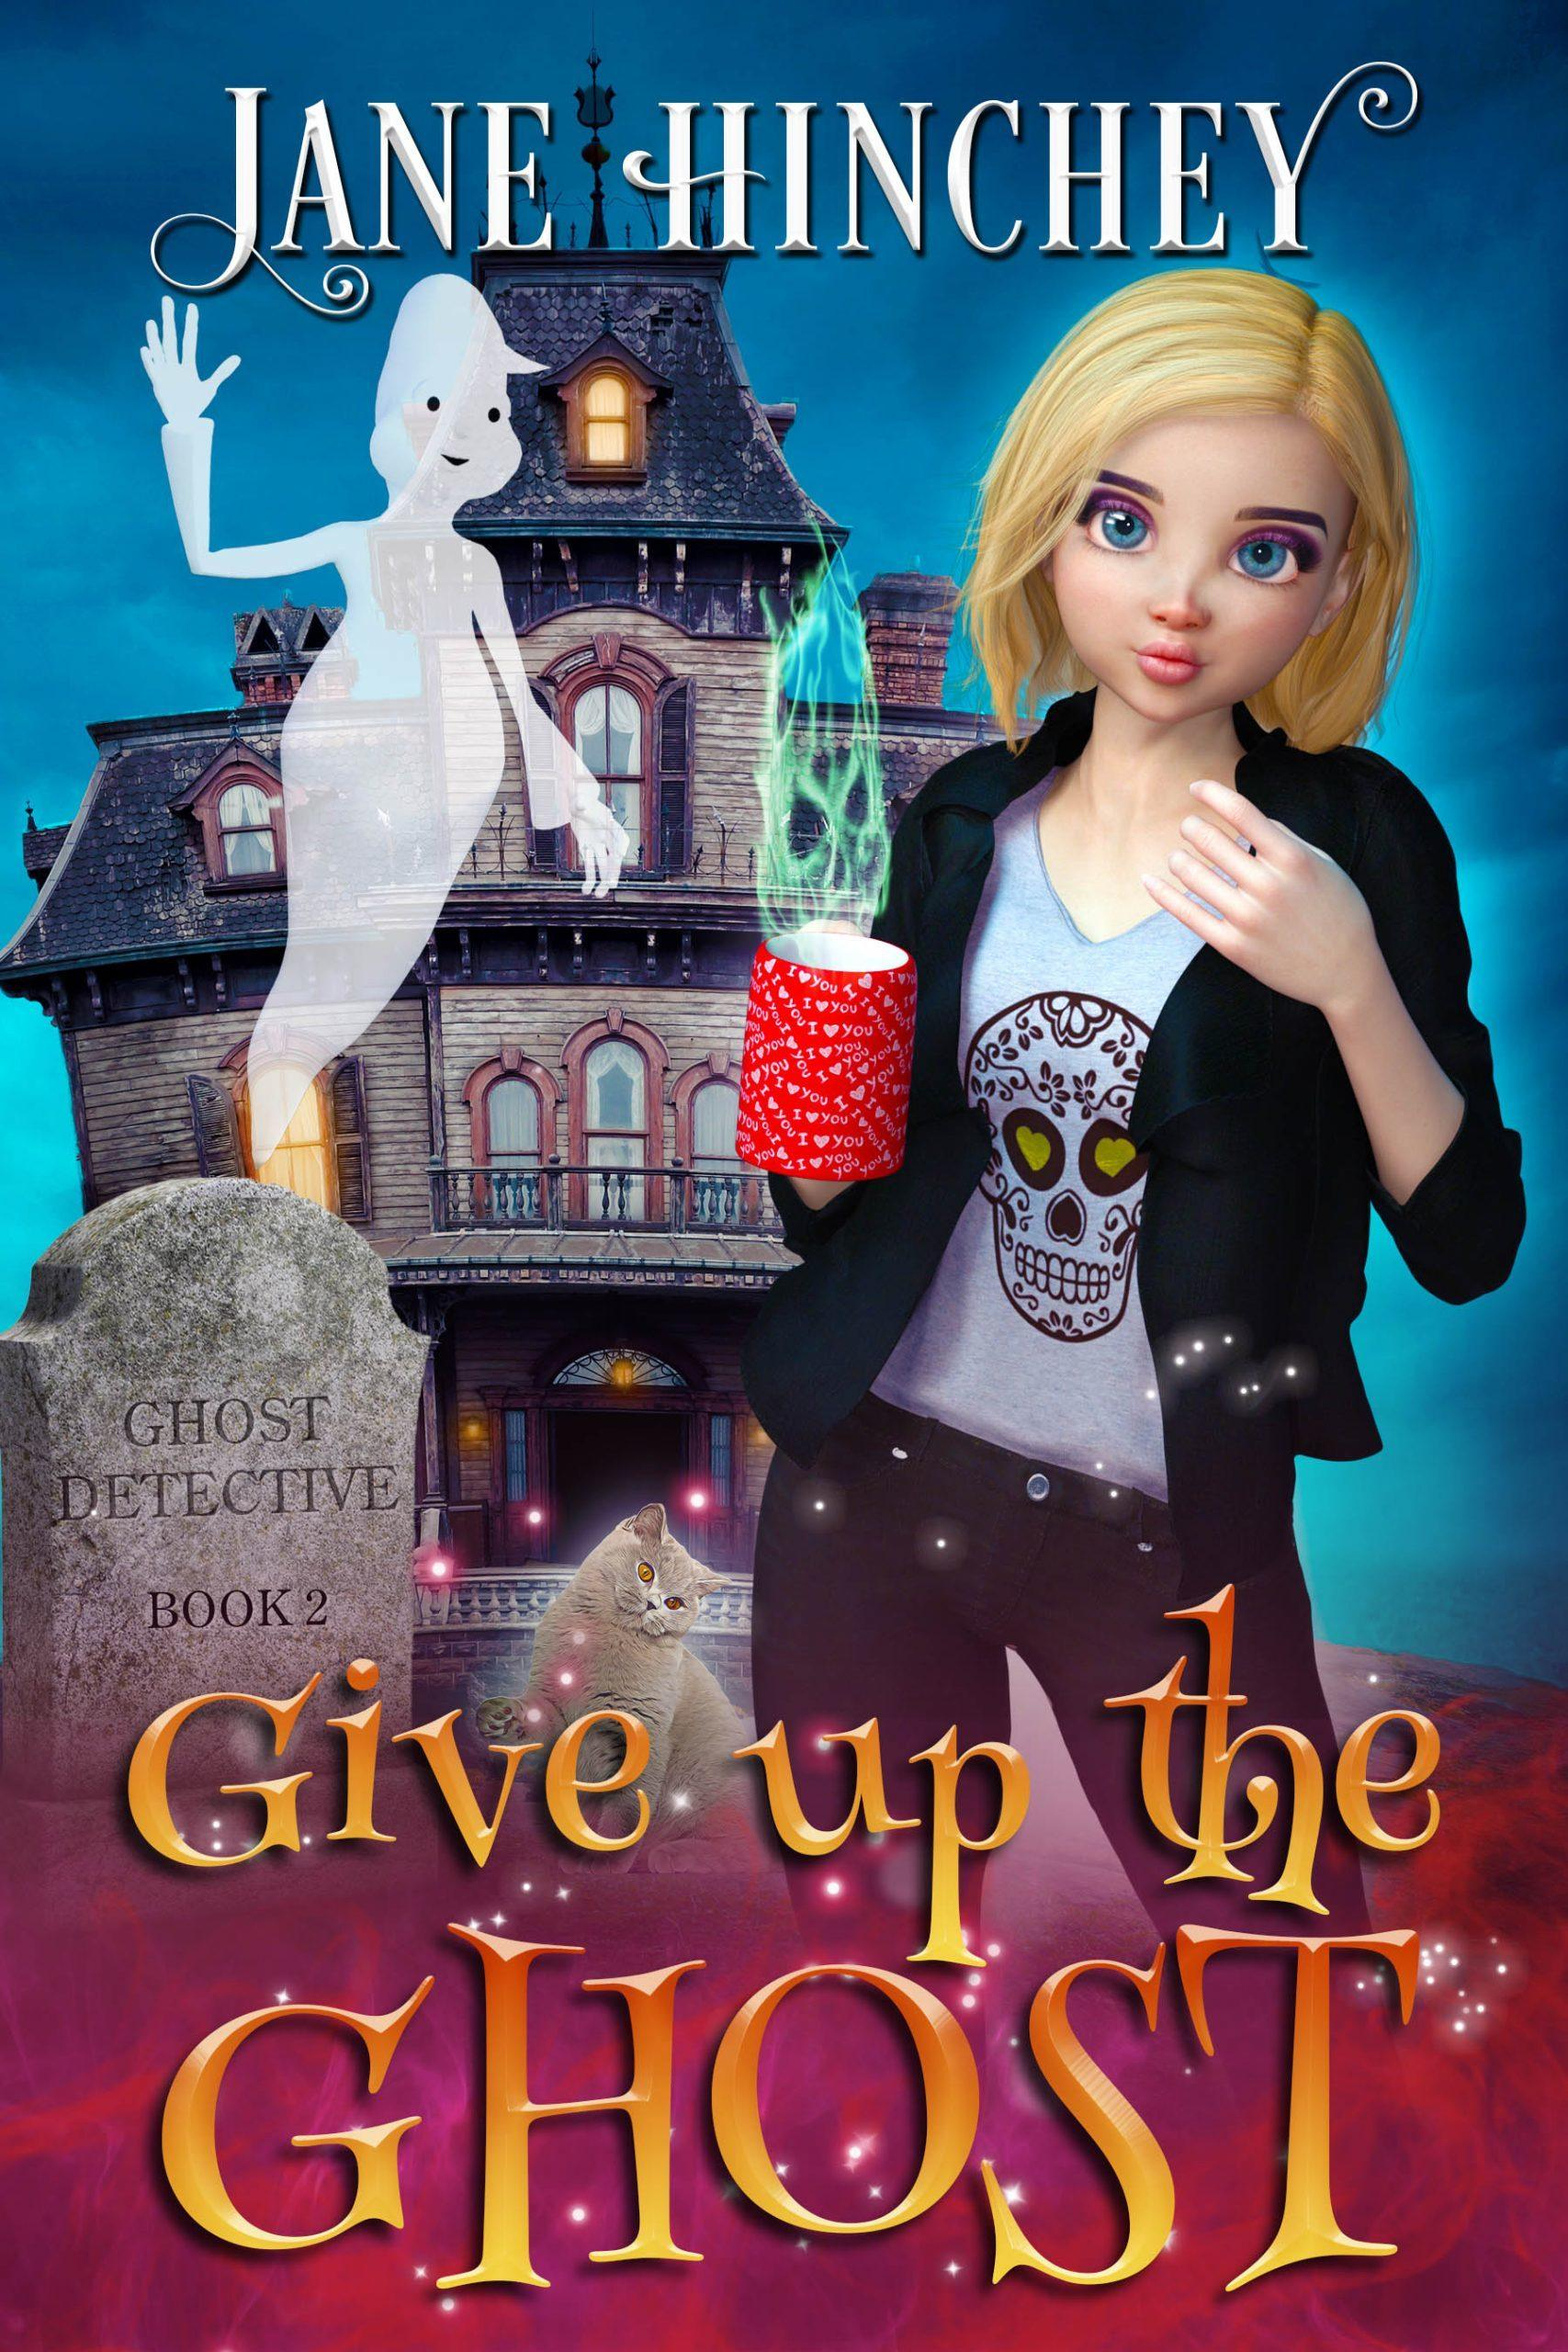 A romantic paranormal cozy mystery